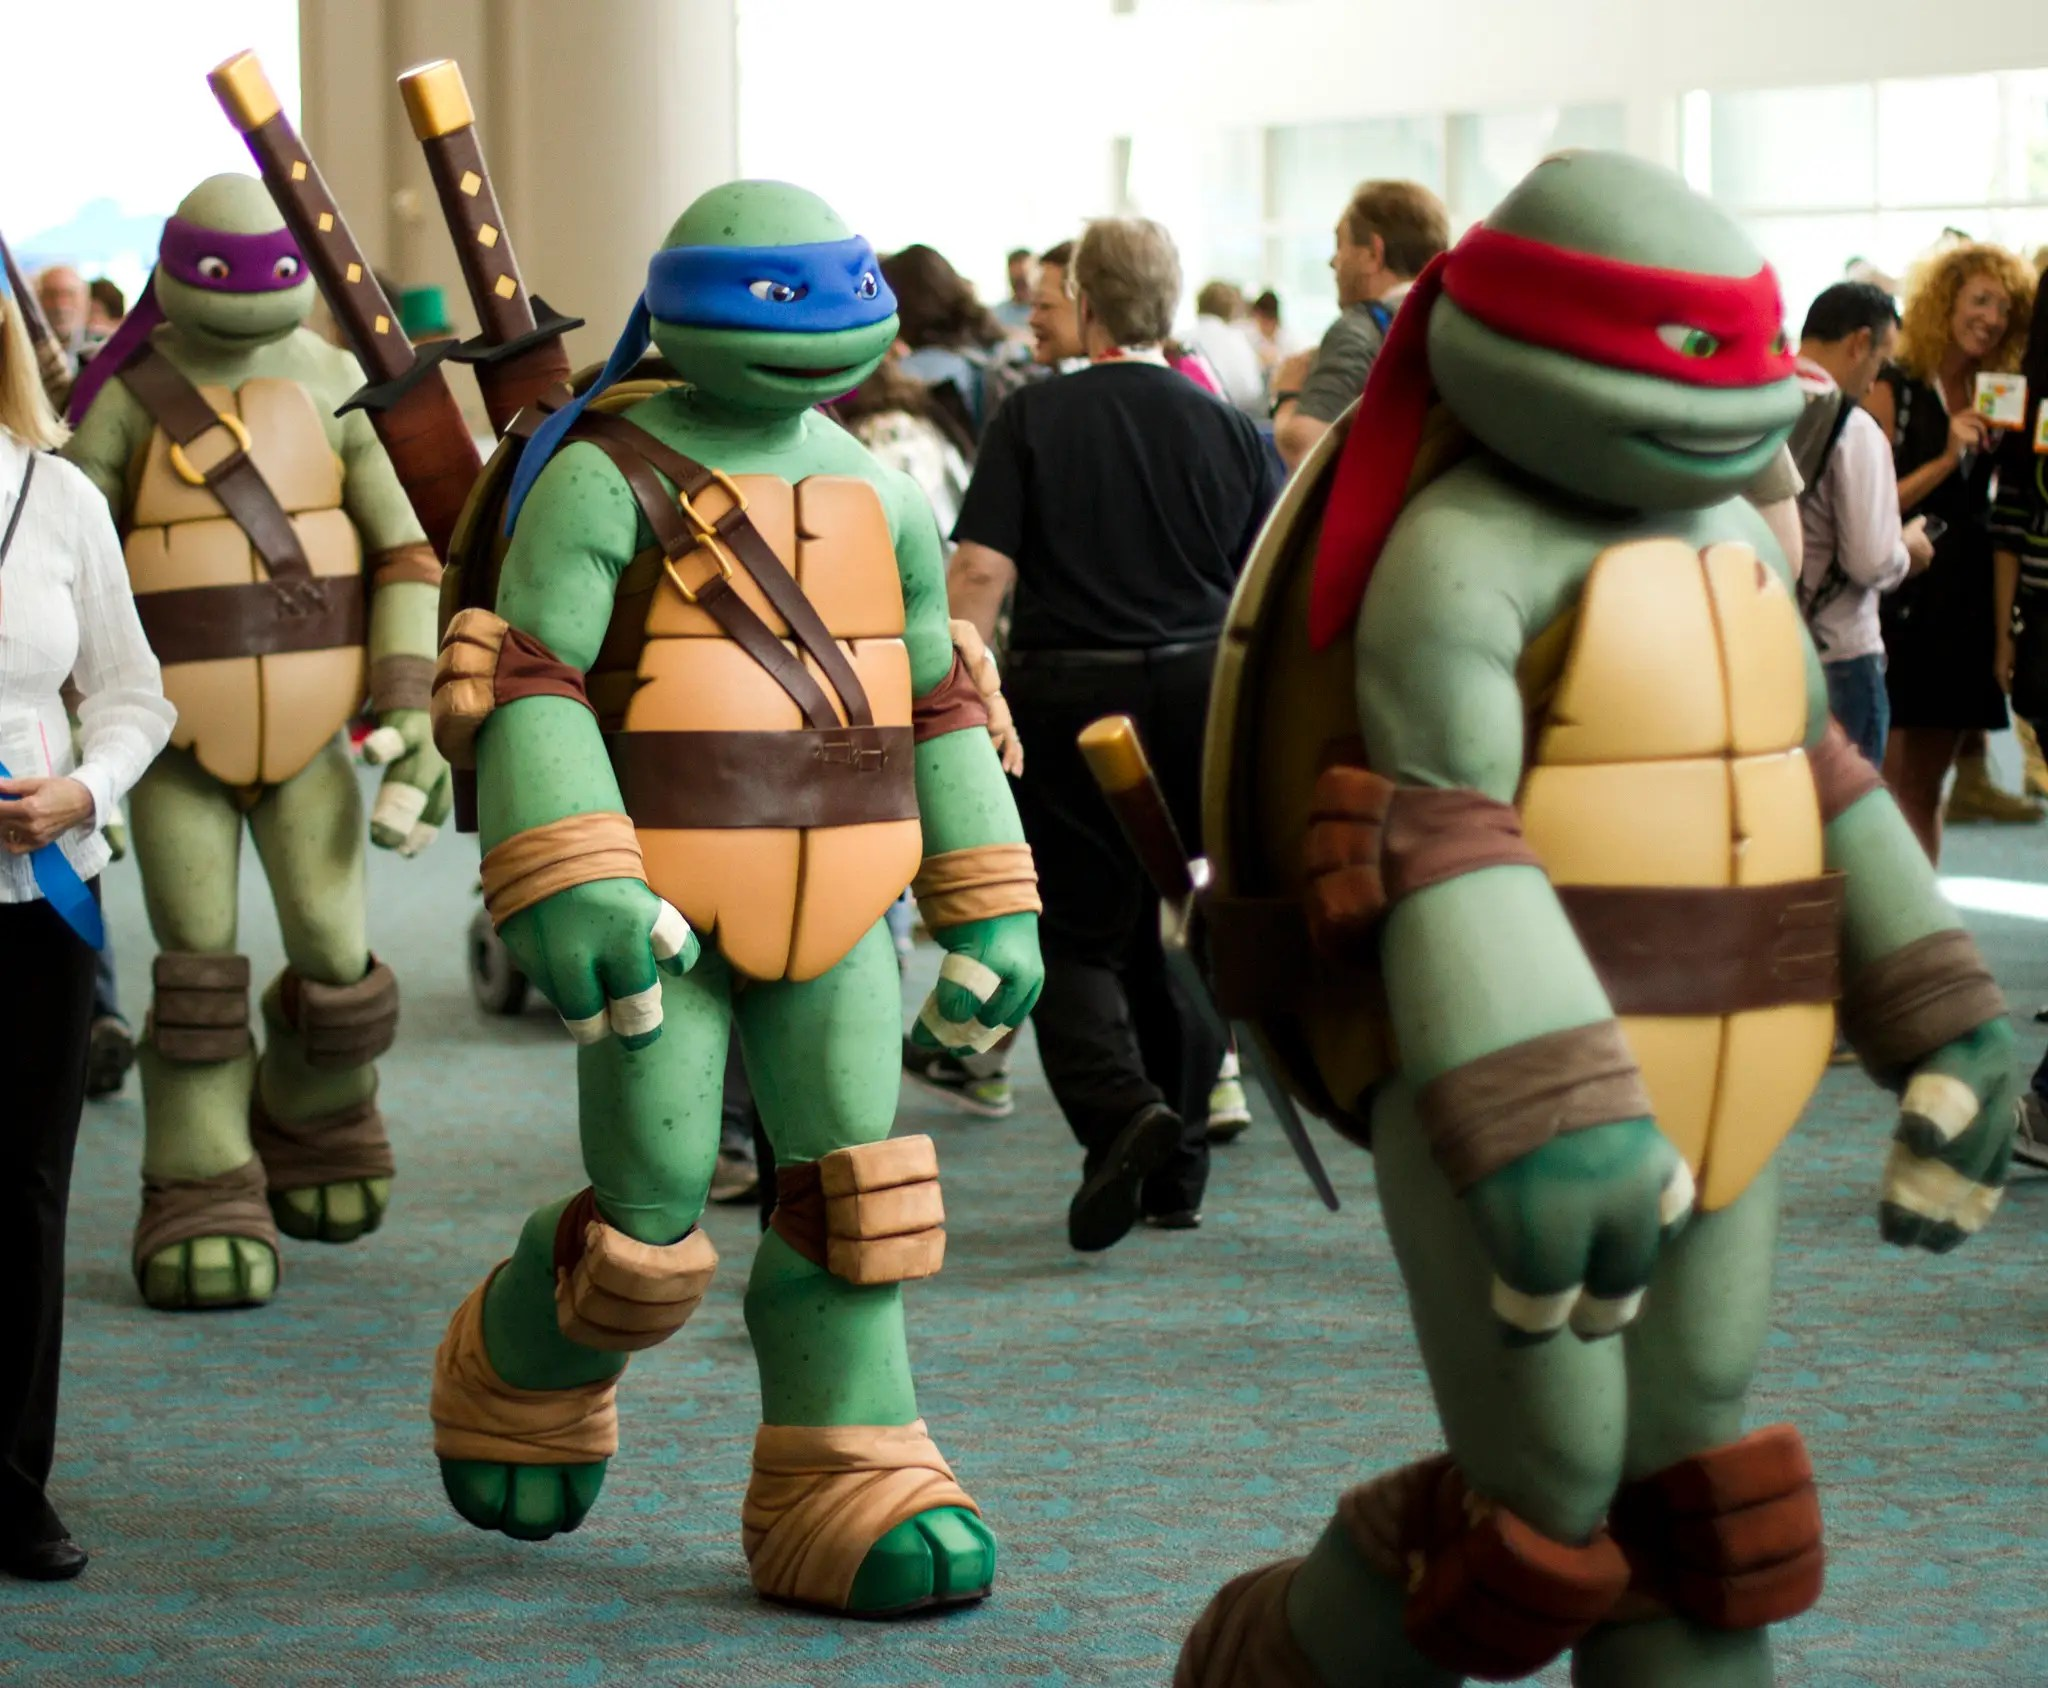 The Teenage Mutant Ninja Turtles set out in search of pizza.